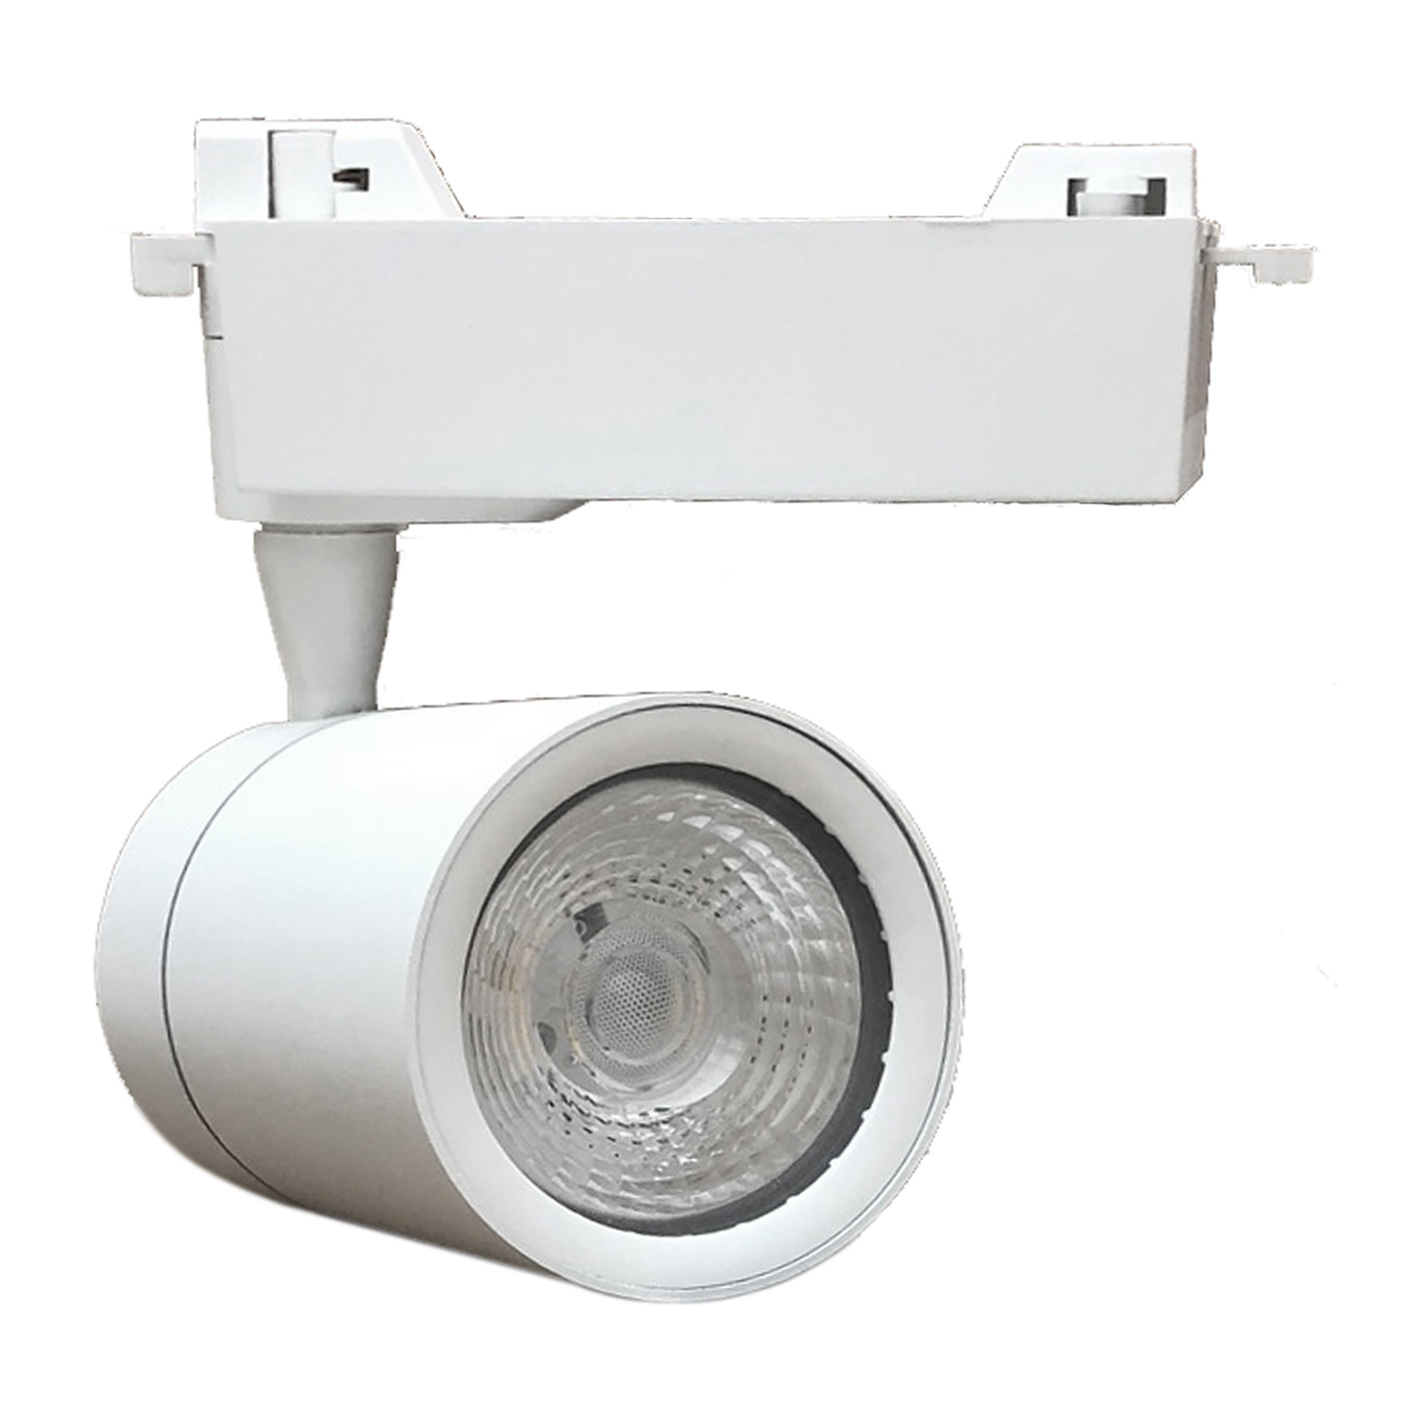 Faretto LED Bianco a binario 30W Monofase faro super compatto COB FB-22-30W